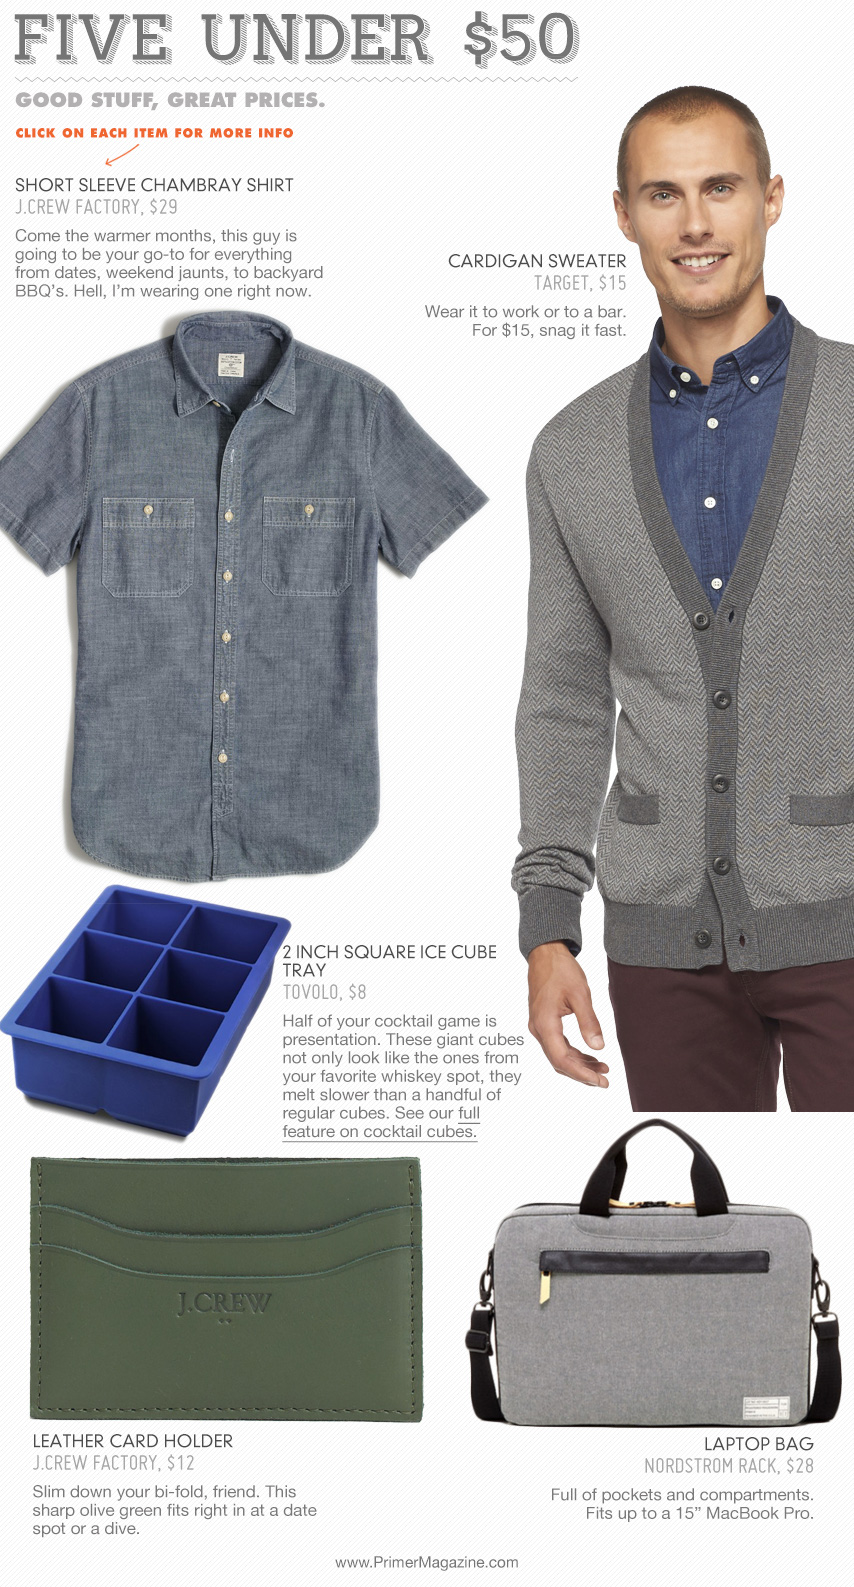 5 under 50 - chambray shirt, sweater, ice cube tray, briefcase, card case